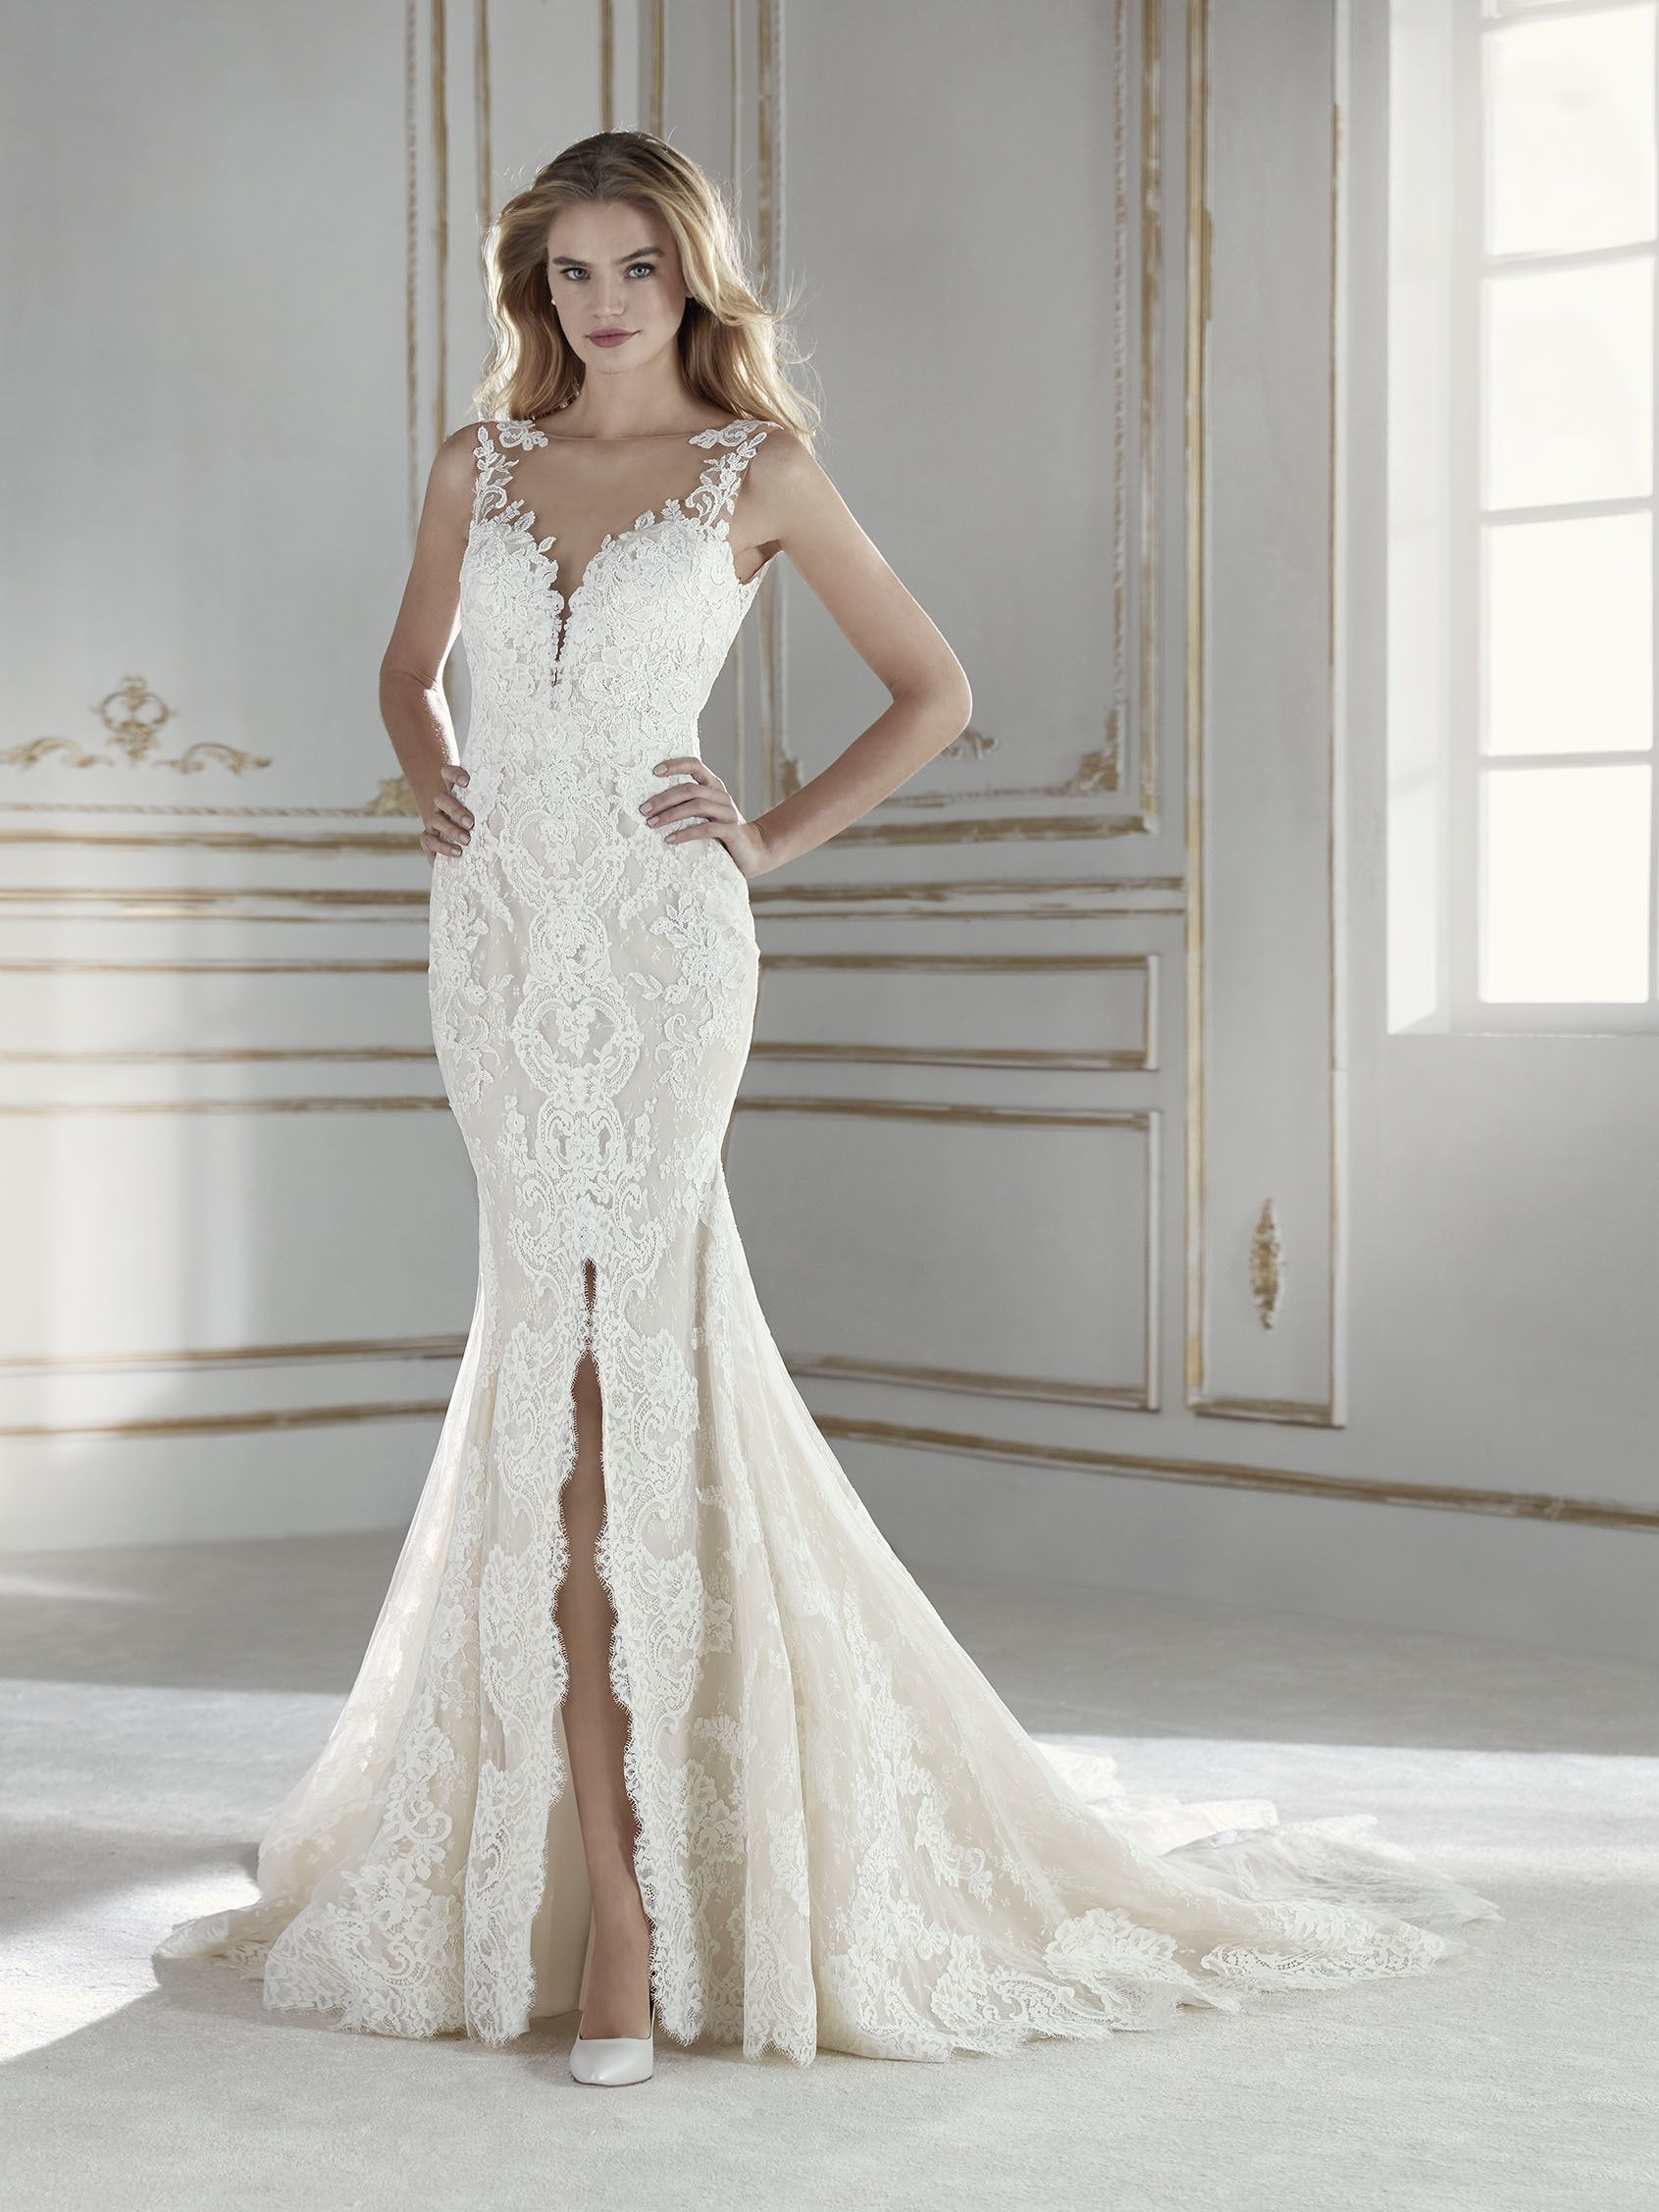 LA SPOSA 2018 Style PARIS Mermaid dress in lace and embroidered Tulle with  beaded appliqués. The gown has a deep center slit in the skirt and a V-neck  front ... e0bce9b7930